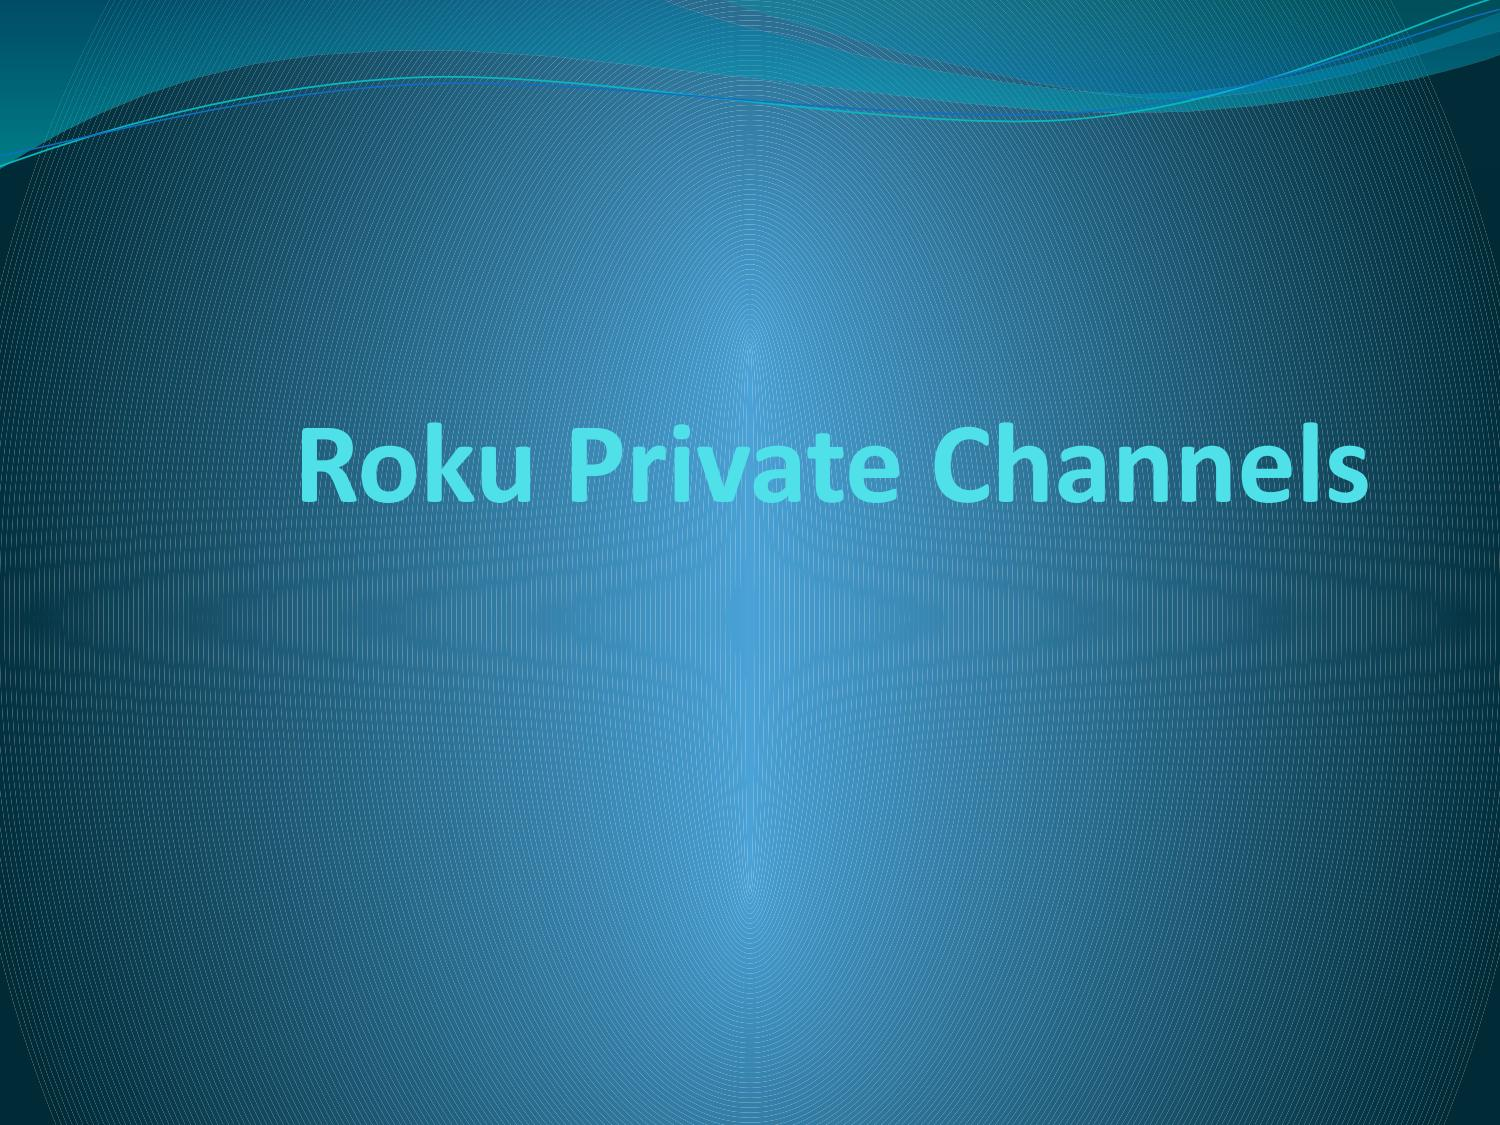 Article on Roku Private Channels by heftymiller11 - issuu